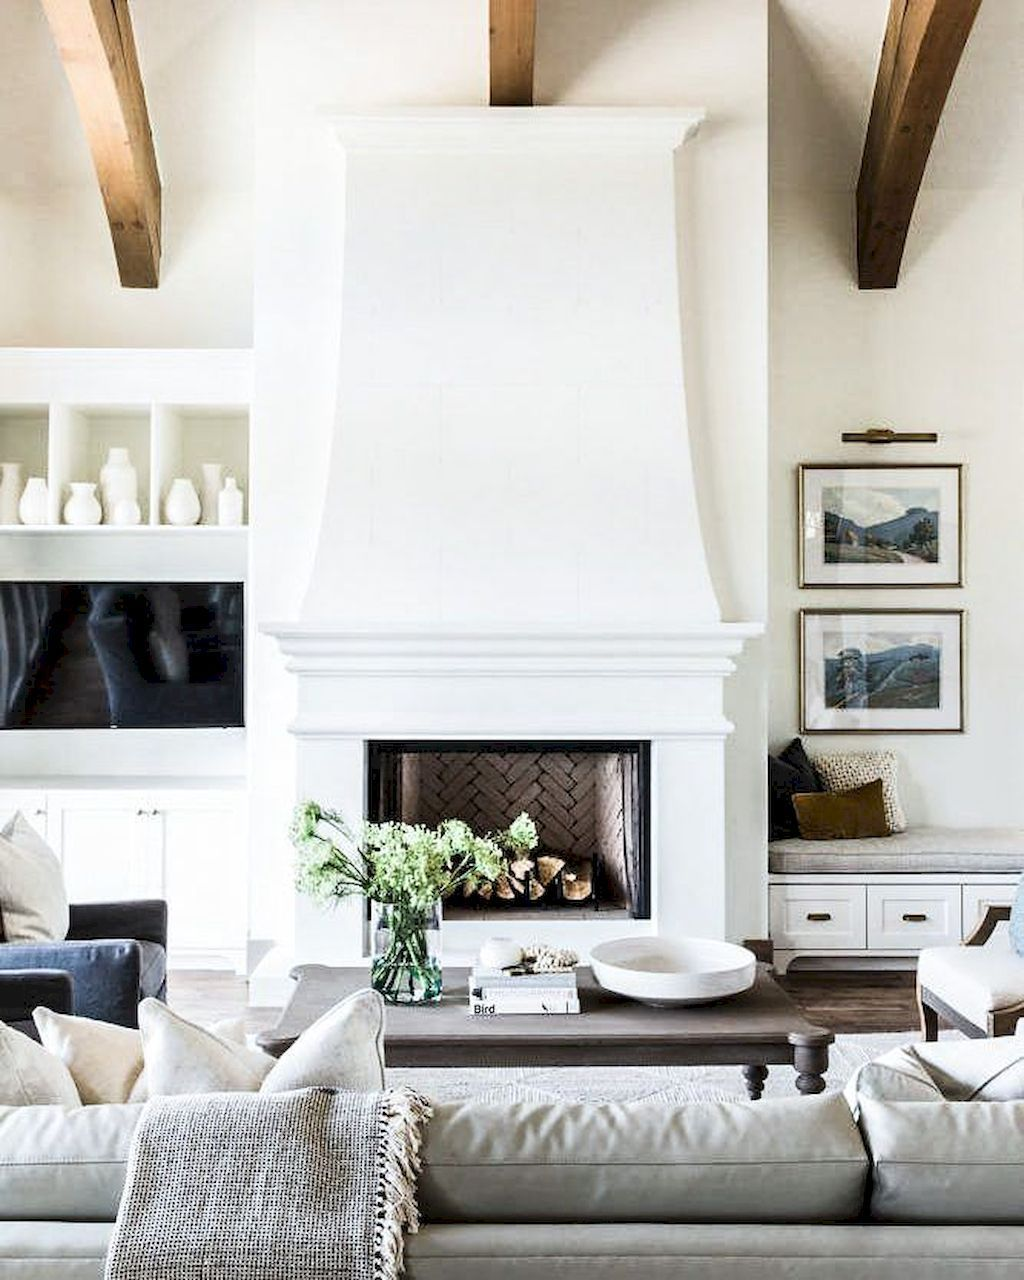 38 Ideas For Living Room: 38 Fancy French Country Living Room Decor Ideas